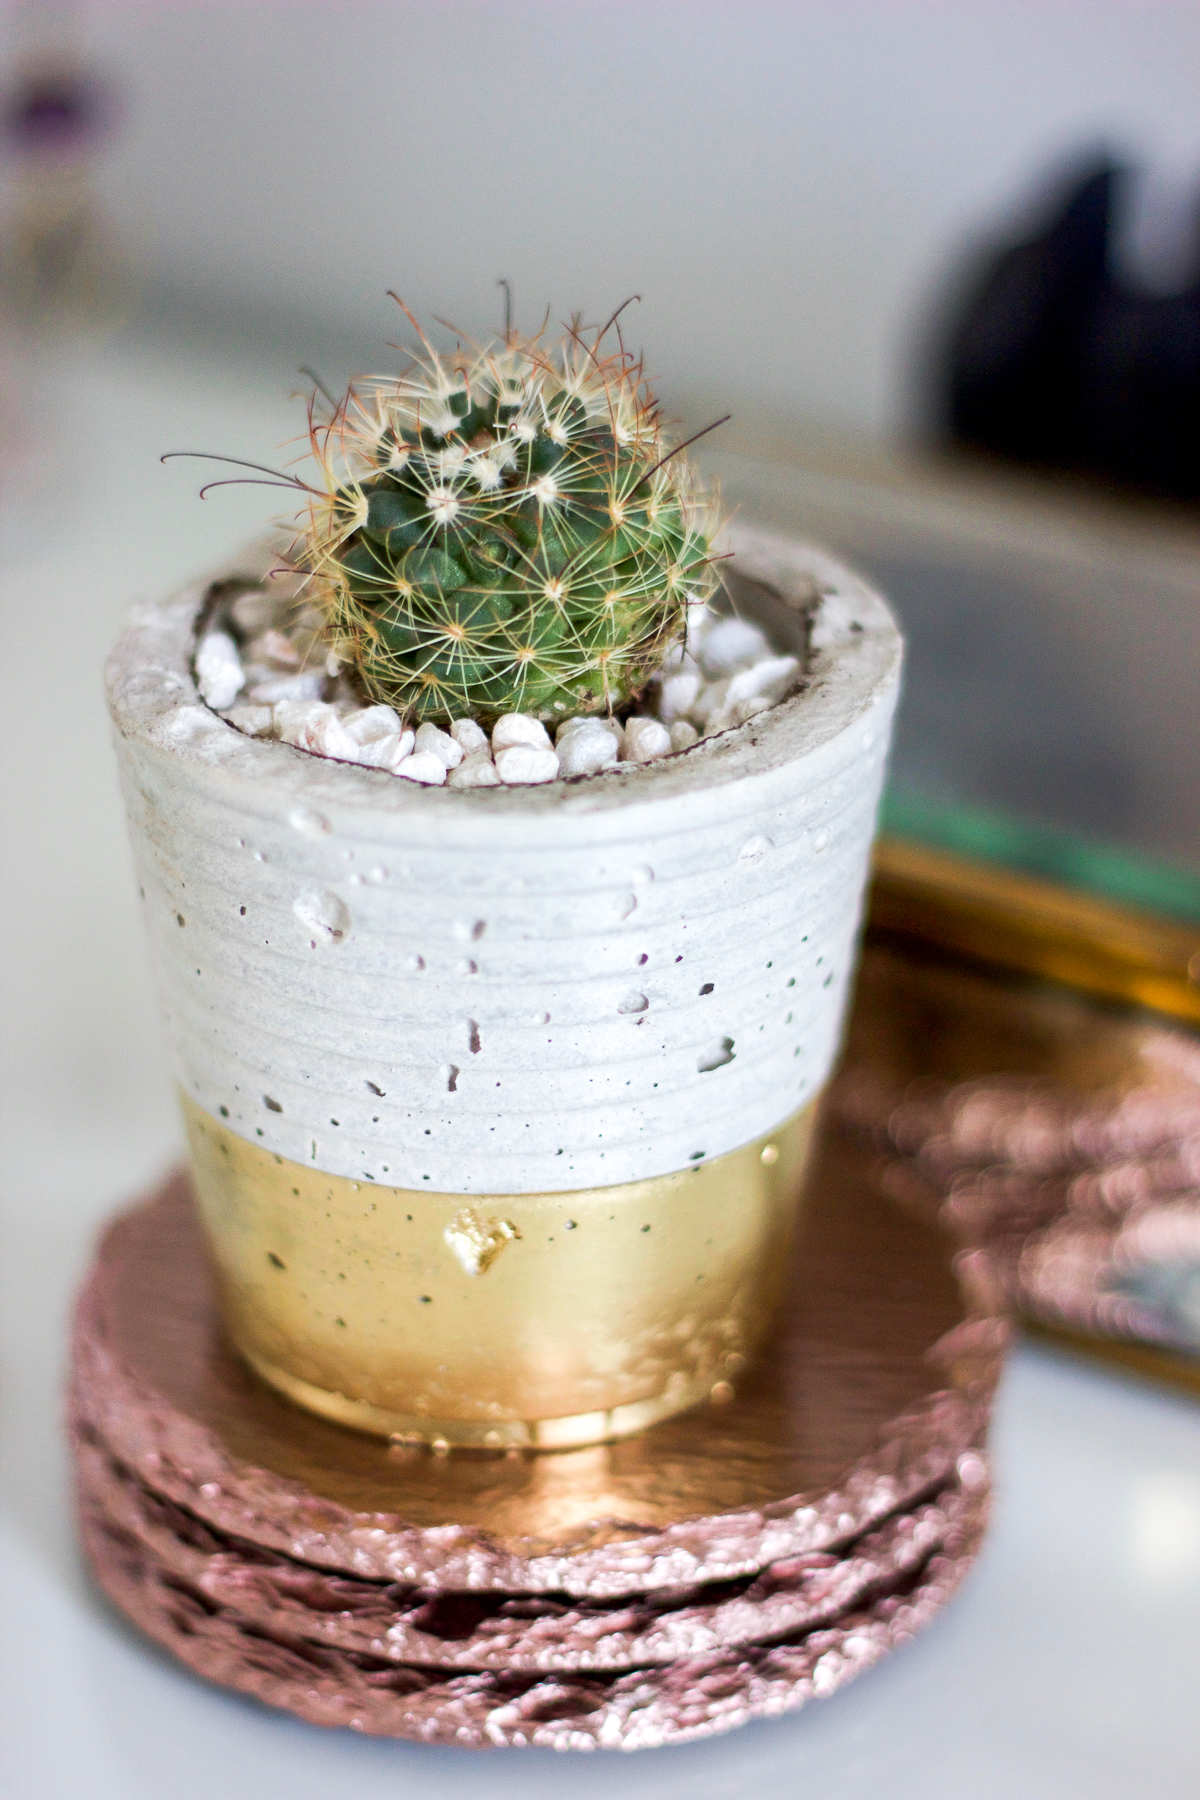 Beautiful potted cactus from My Pal Al